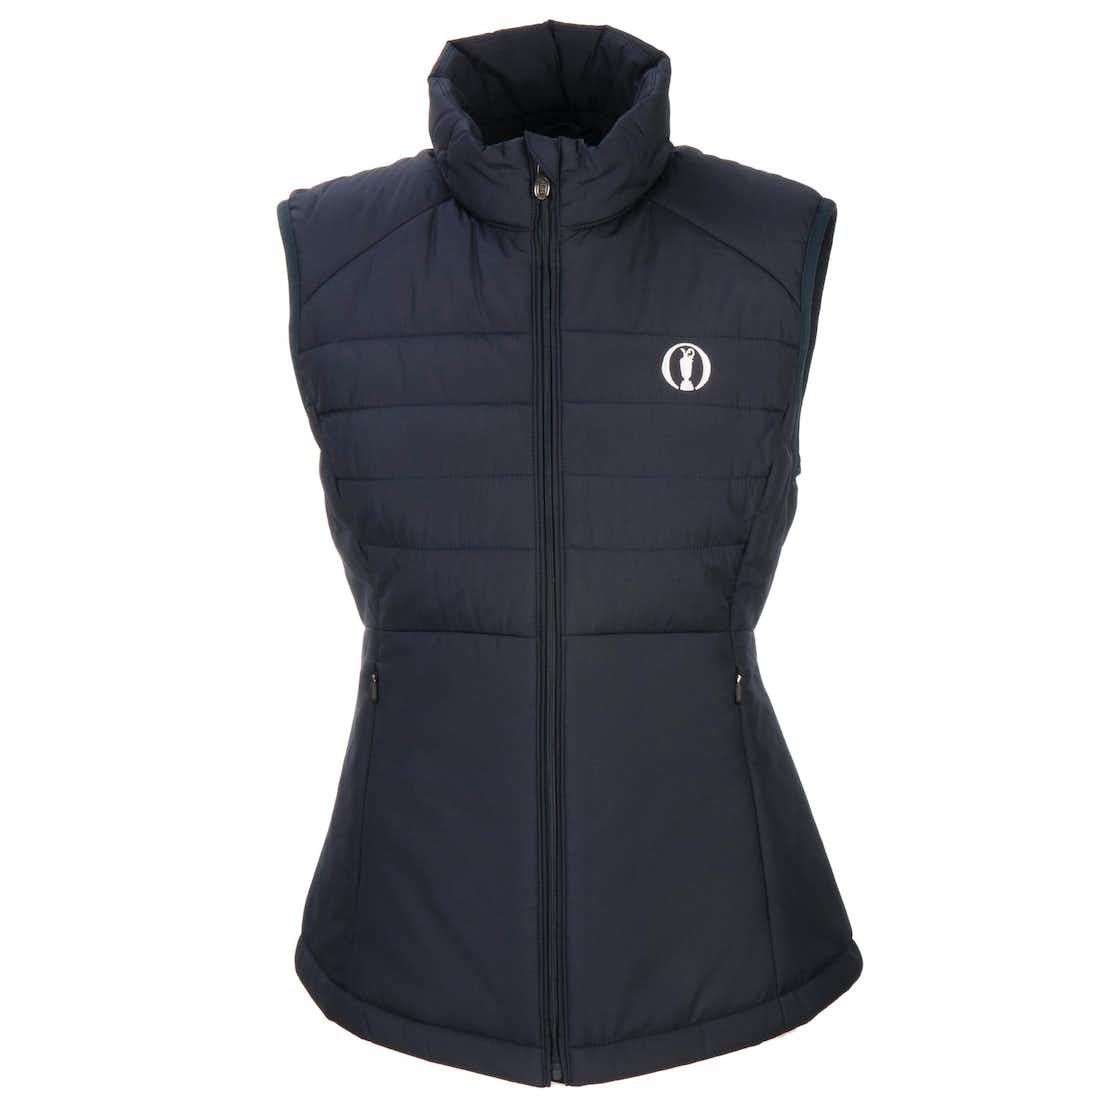 The Open BOSS Gilet - Blue